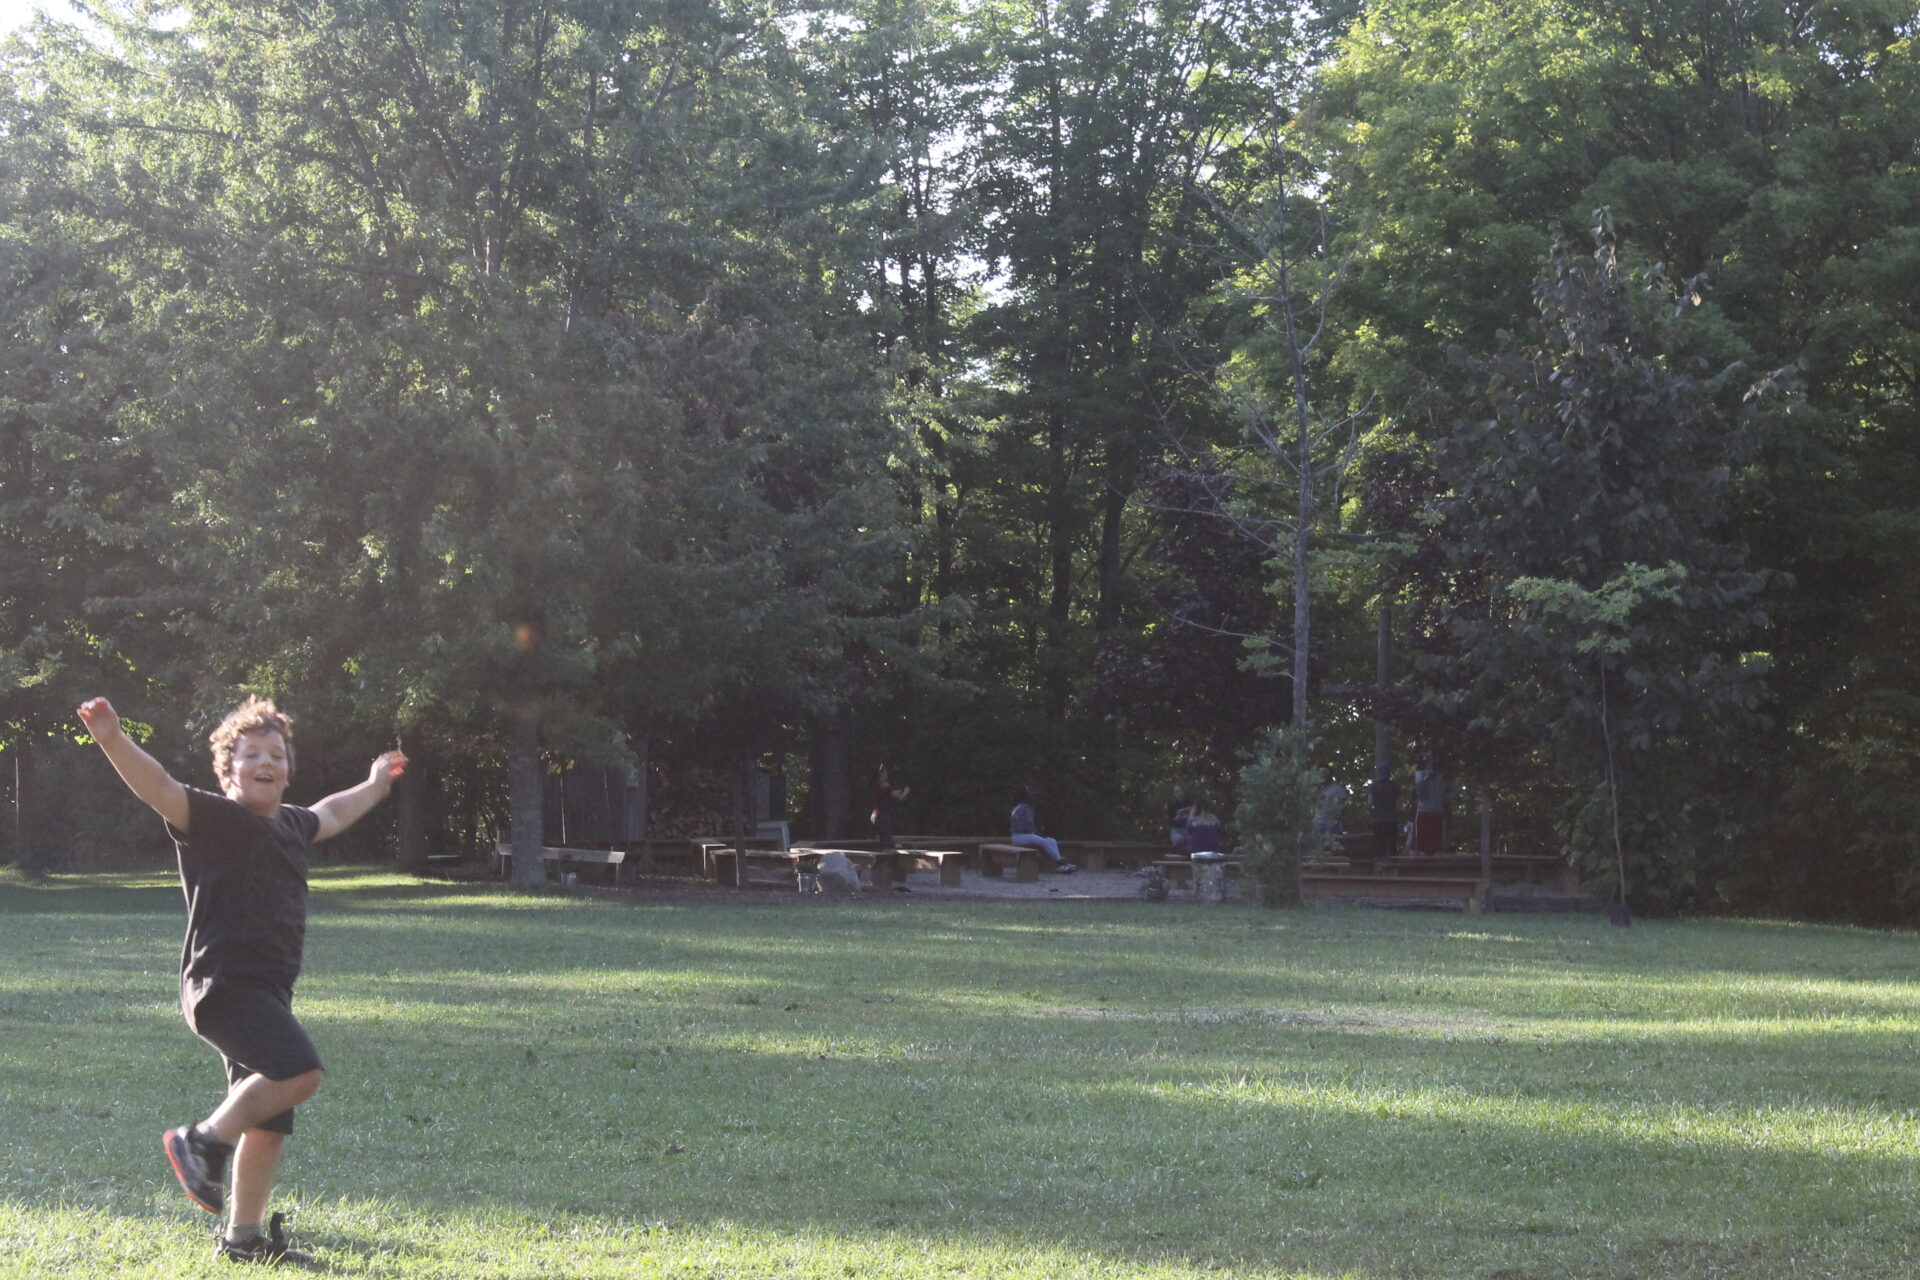 Young camper running with arms up raised